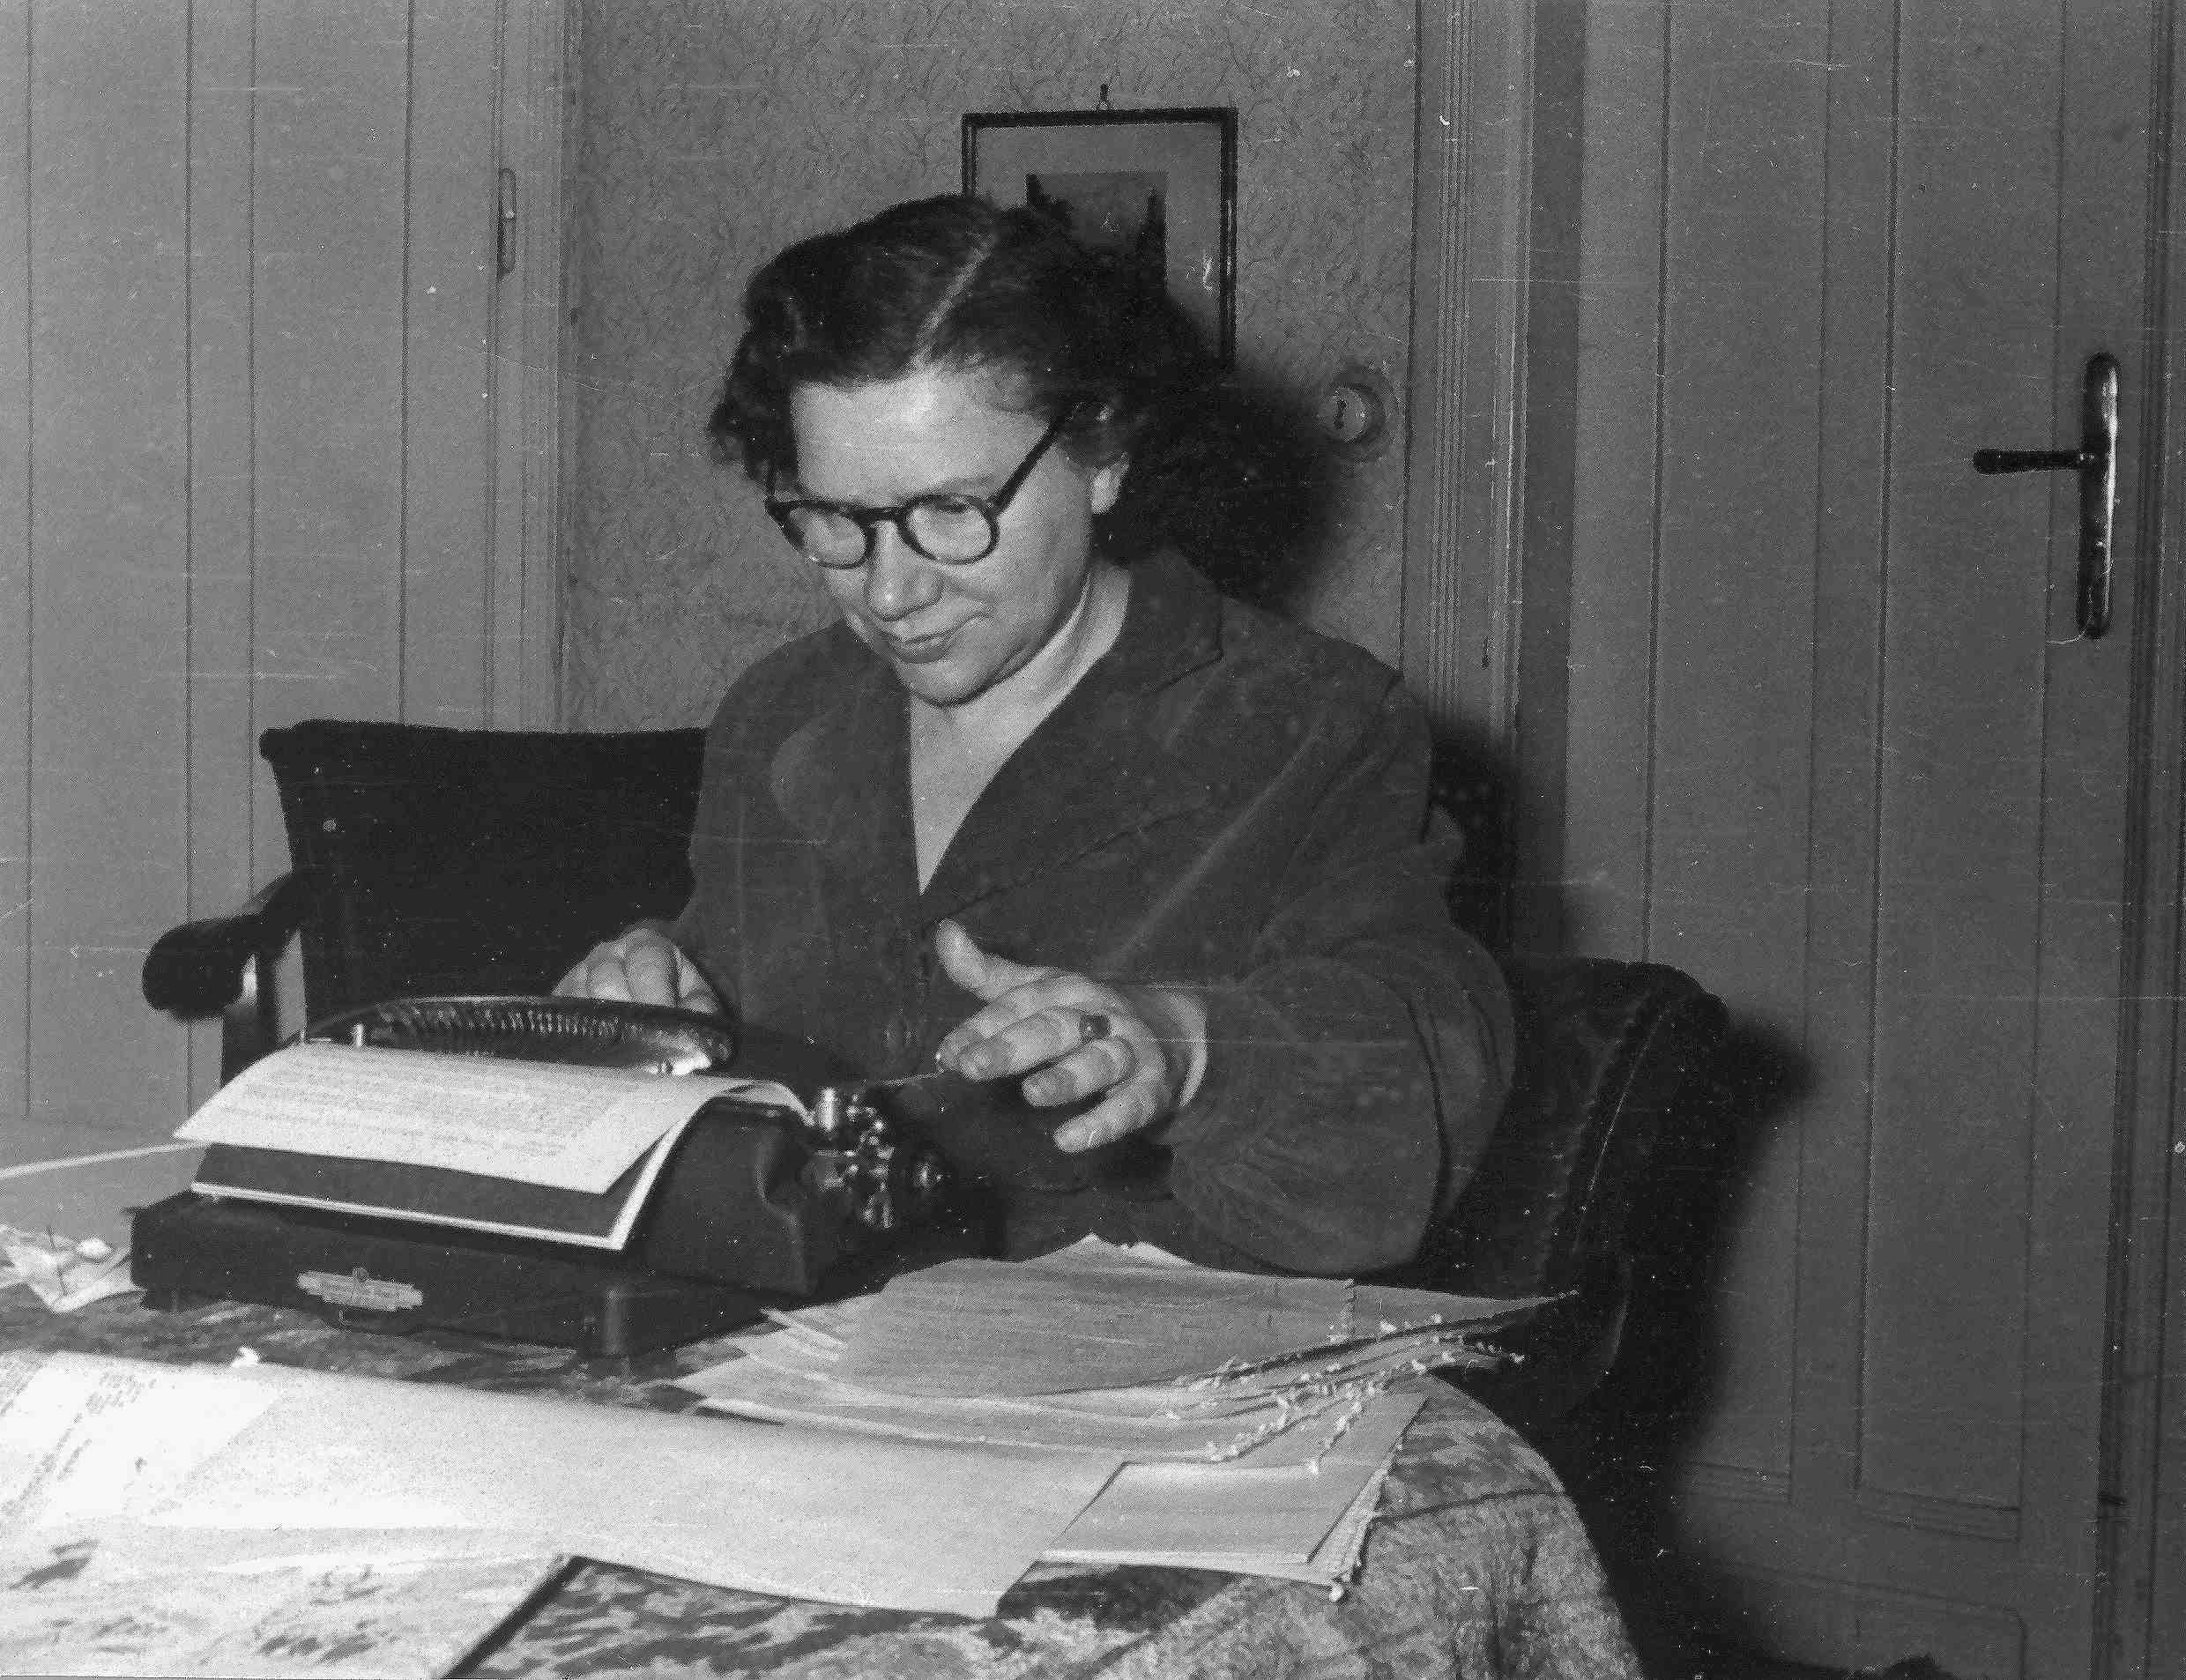 Kató Gyulai writing her report in 1947